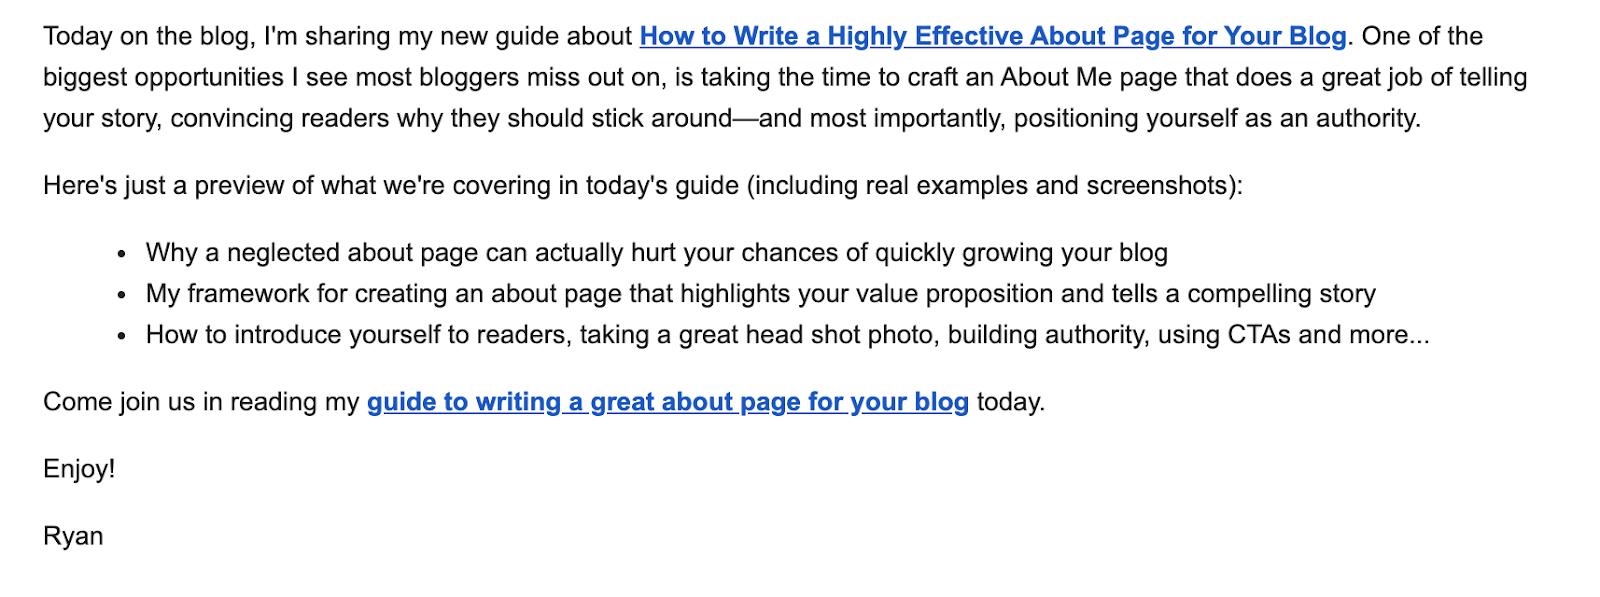 Example of an Email Campaign (Blog Post Notification Screenshot)